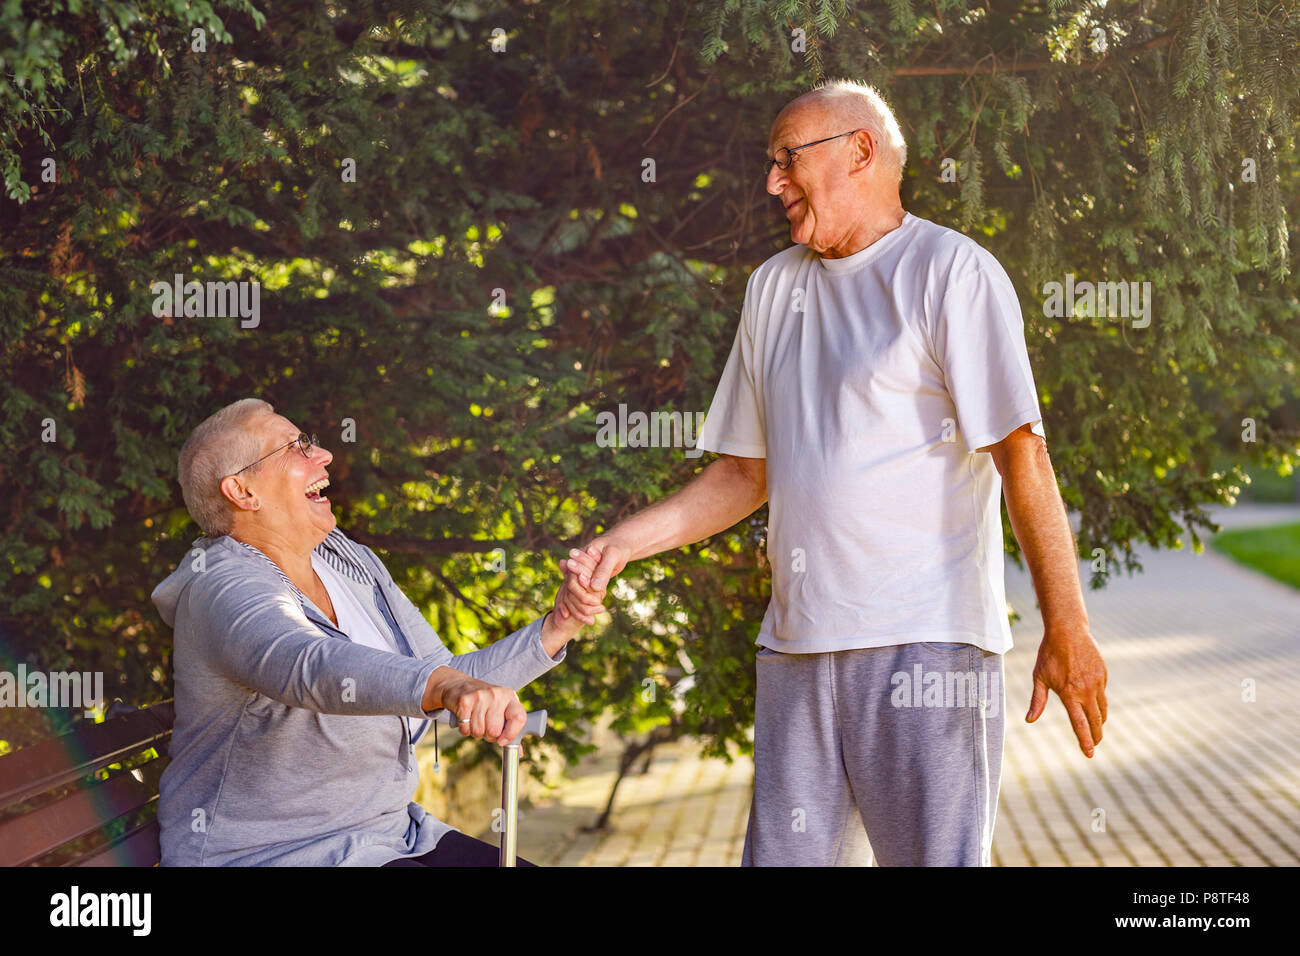 Seniors in park- Smiling old man caring wife in the park - Stock Image